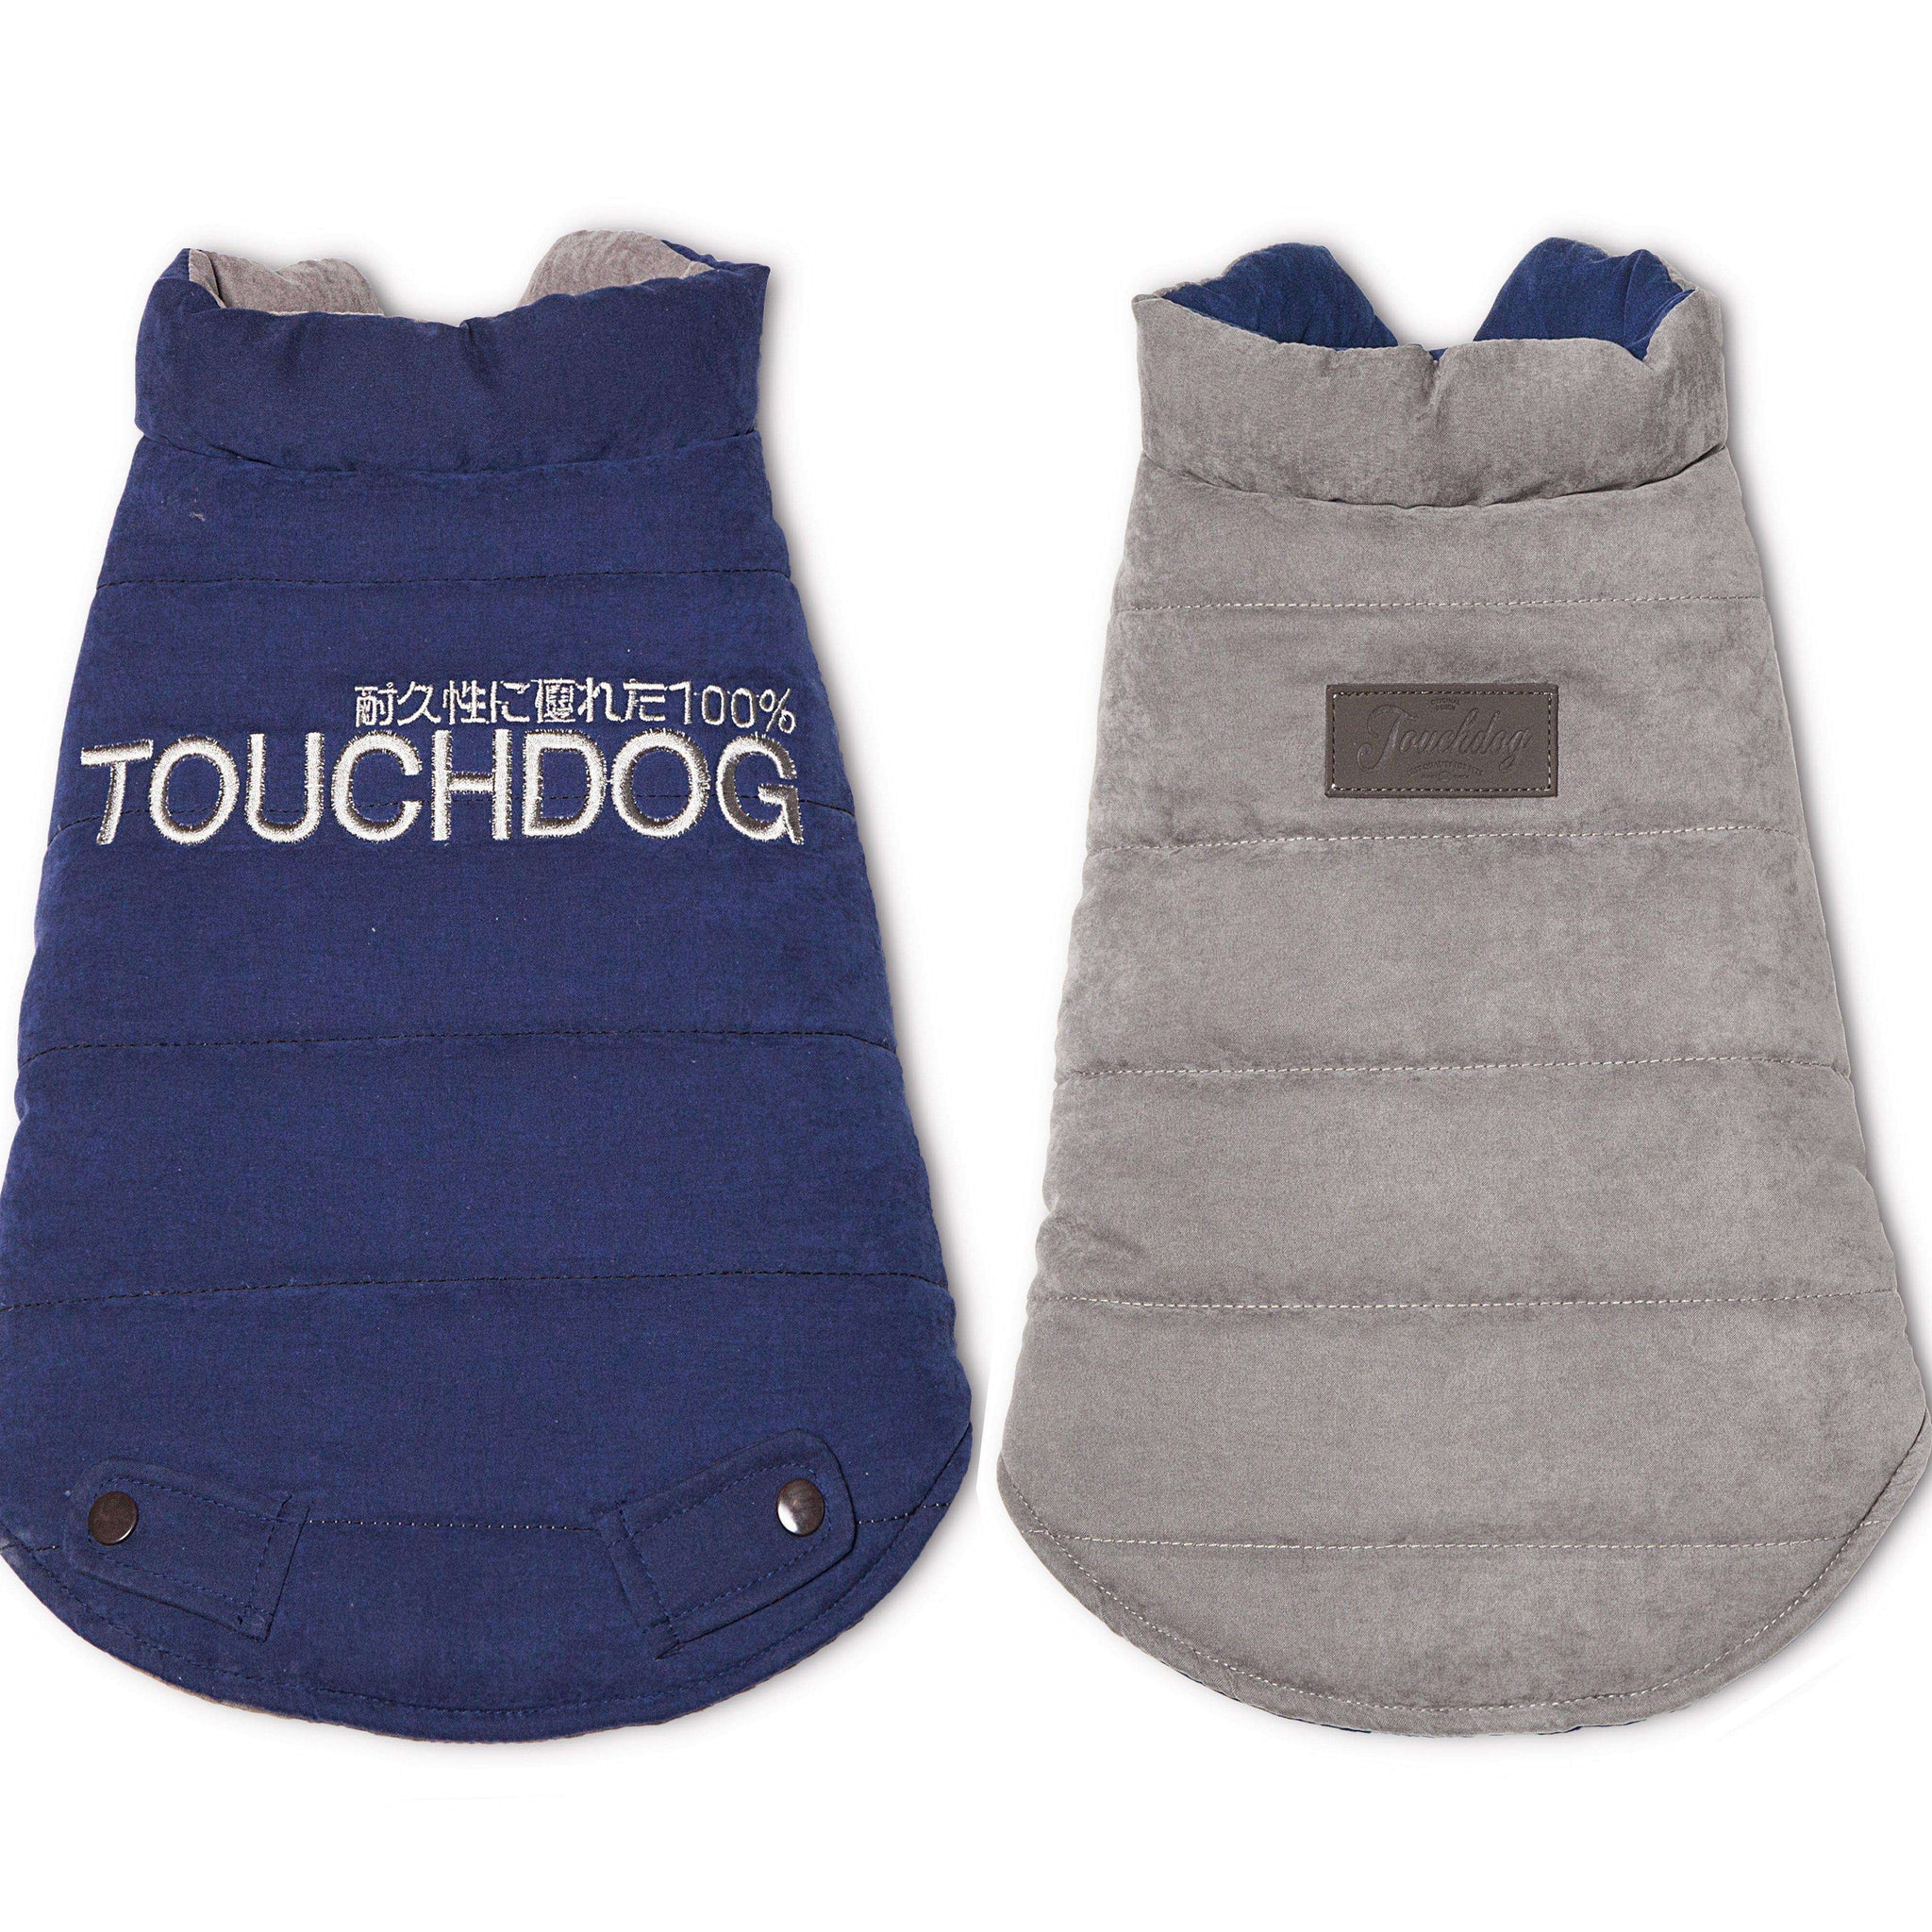 Touchdog Waggin Swag Reversible Insulated Pet Coat-Touchdog-DirtyFurClothing